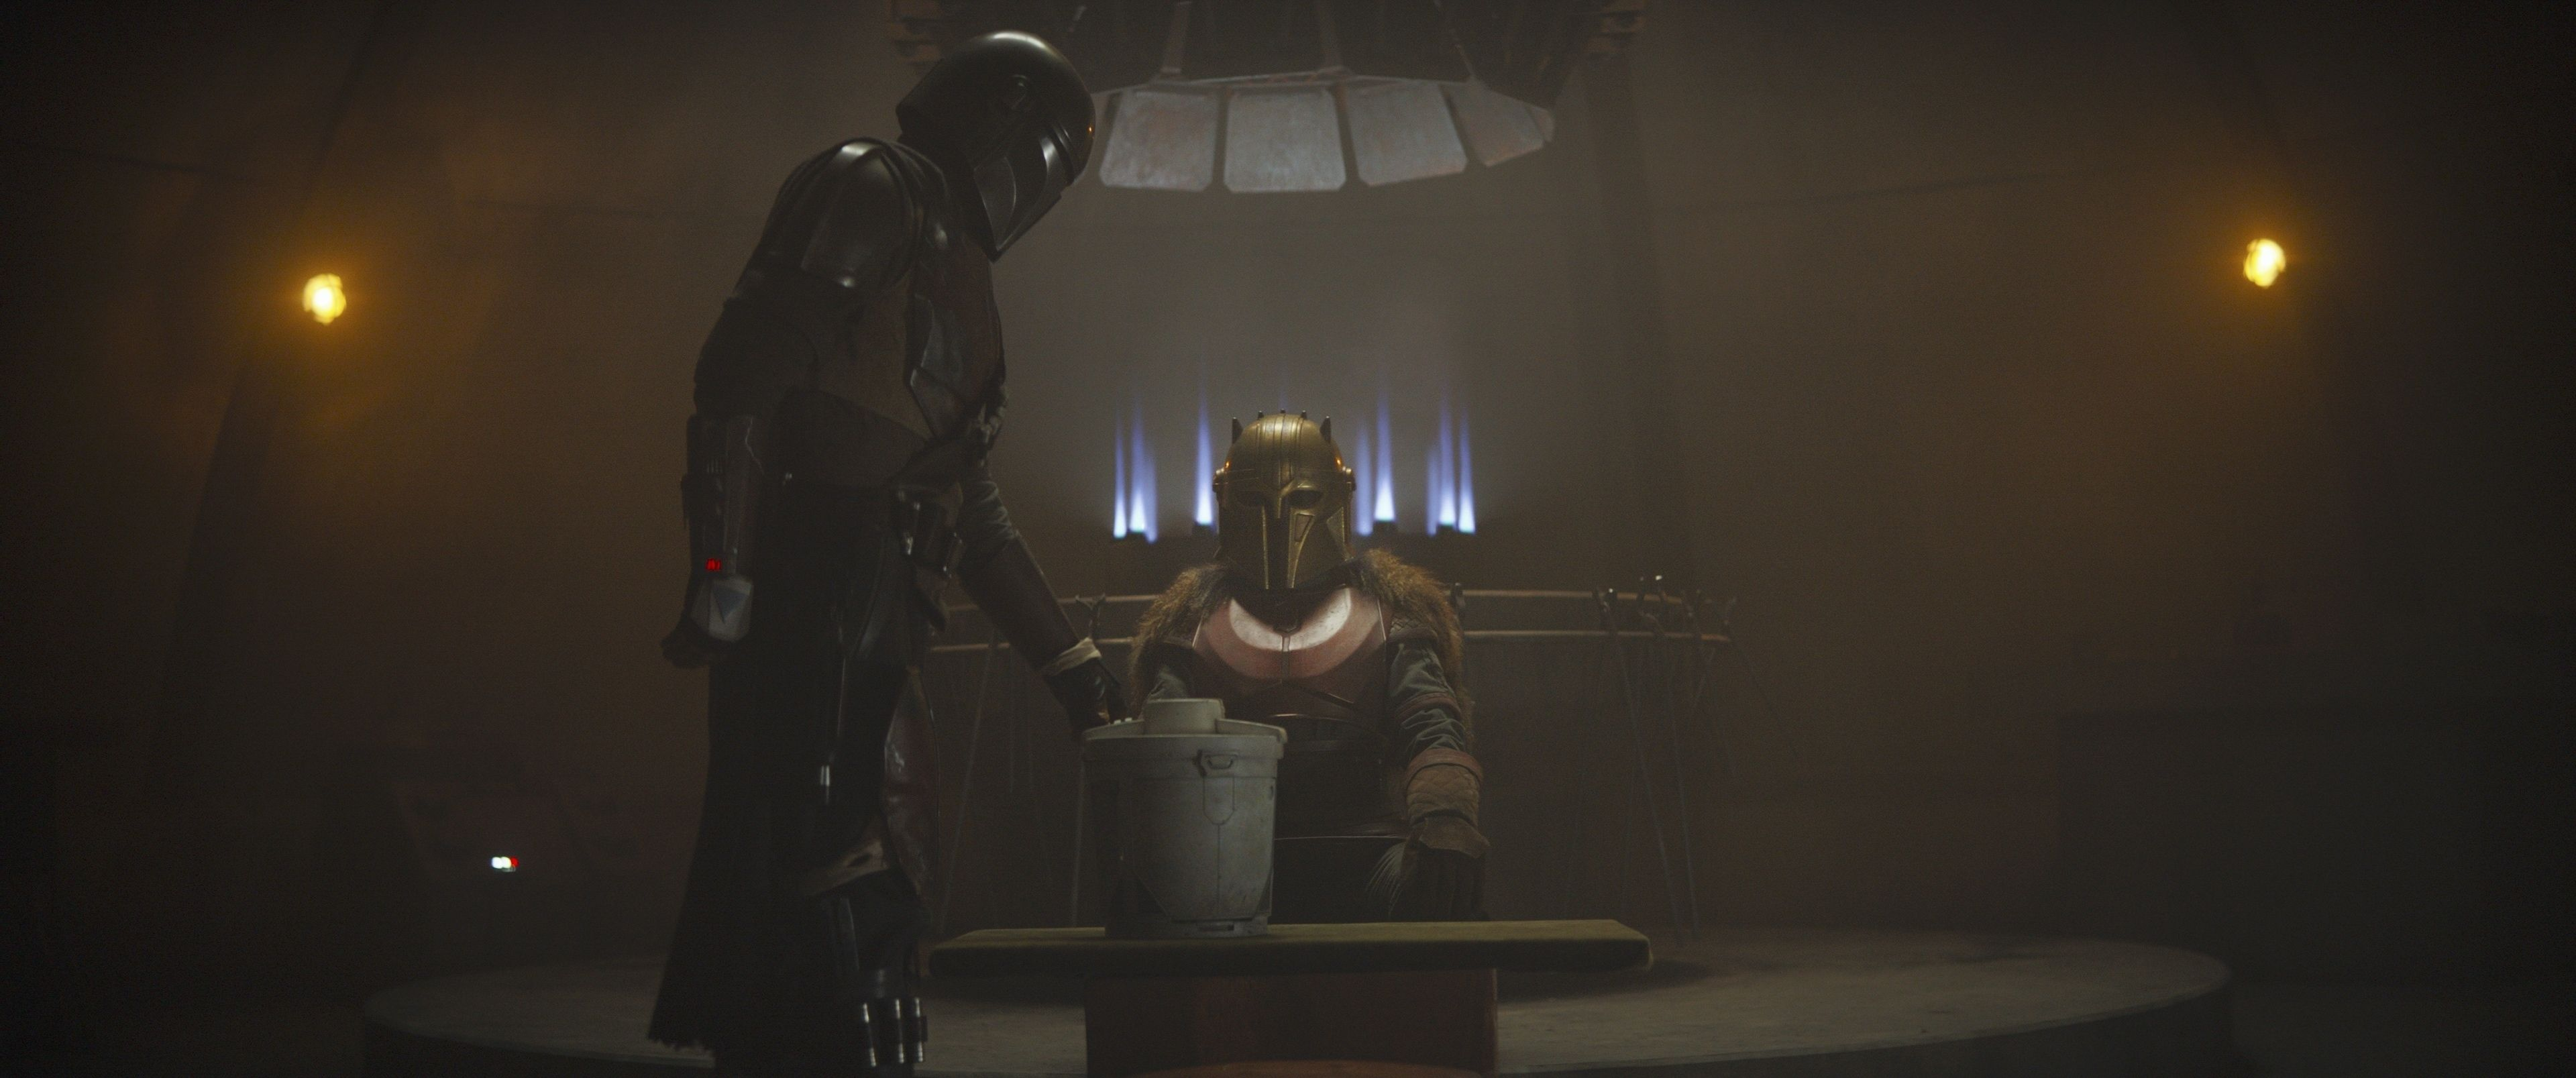 The Mandalorian New Episodes : the mandalorian episode 3 images tease more baby yoda ~ Pogadajmy.info Styles, Décorations et Voitures